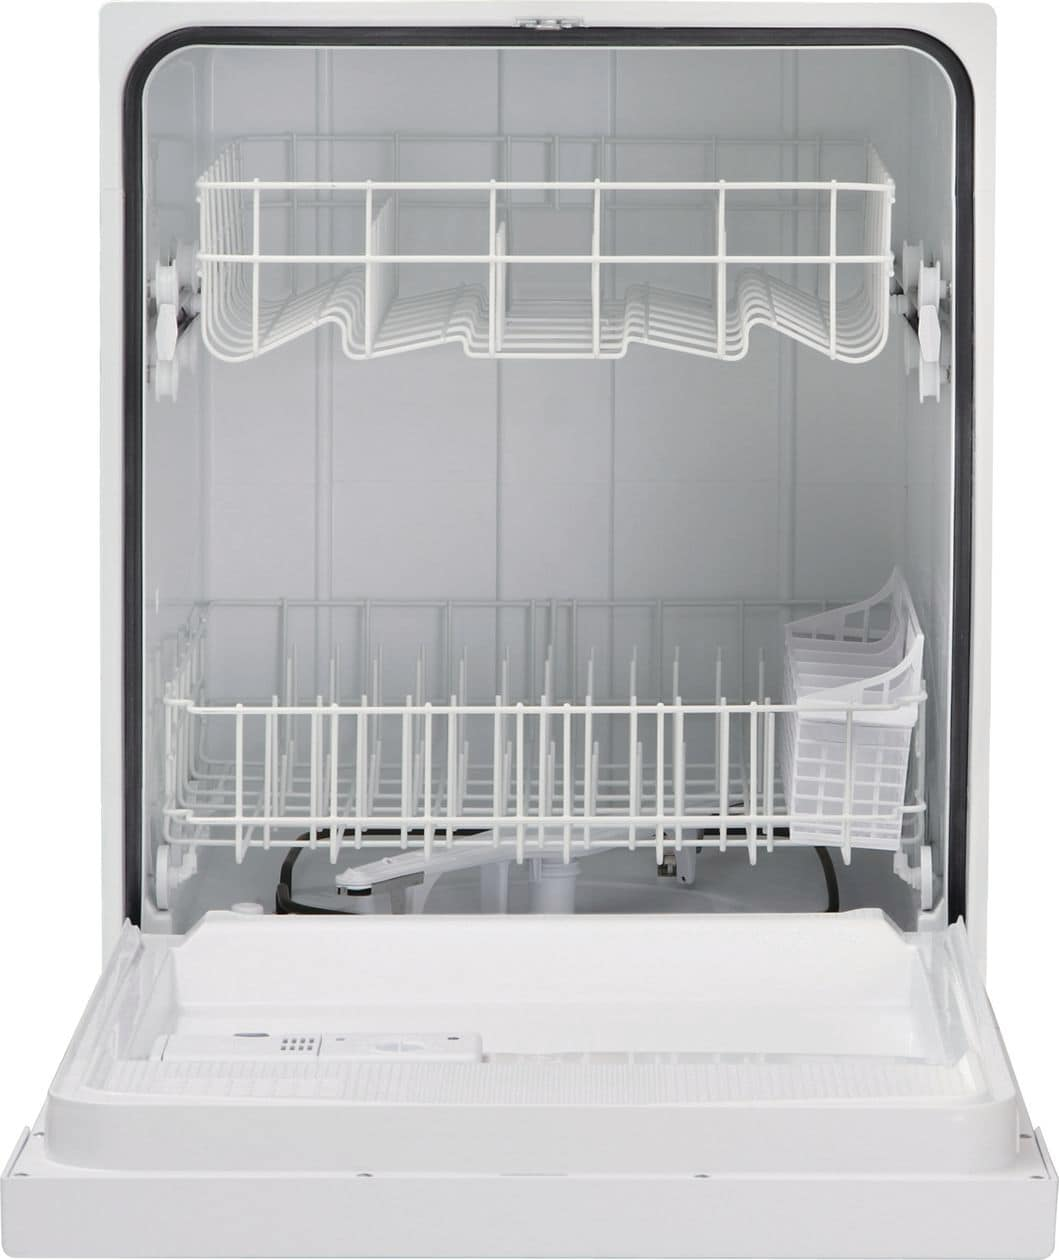 "Model: FBD2400KW | Frigidaire 24"" Built-In Dishwasher"